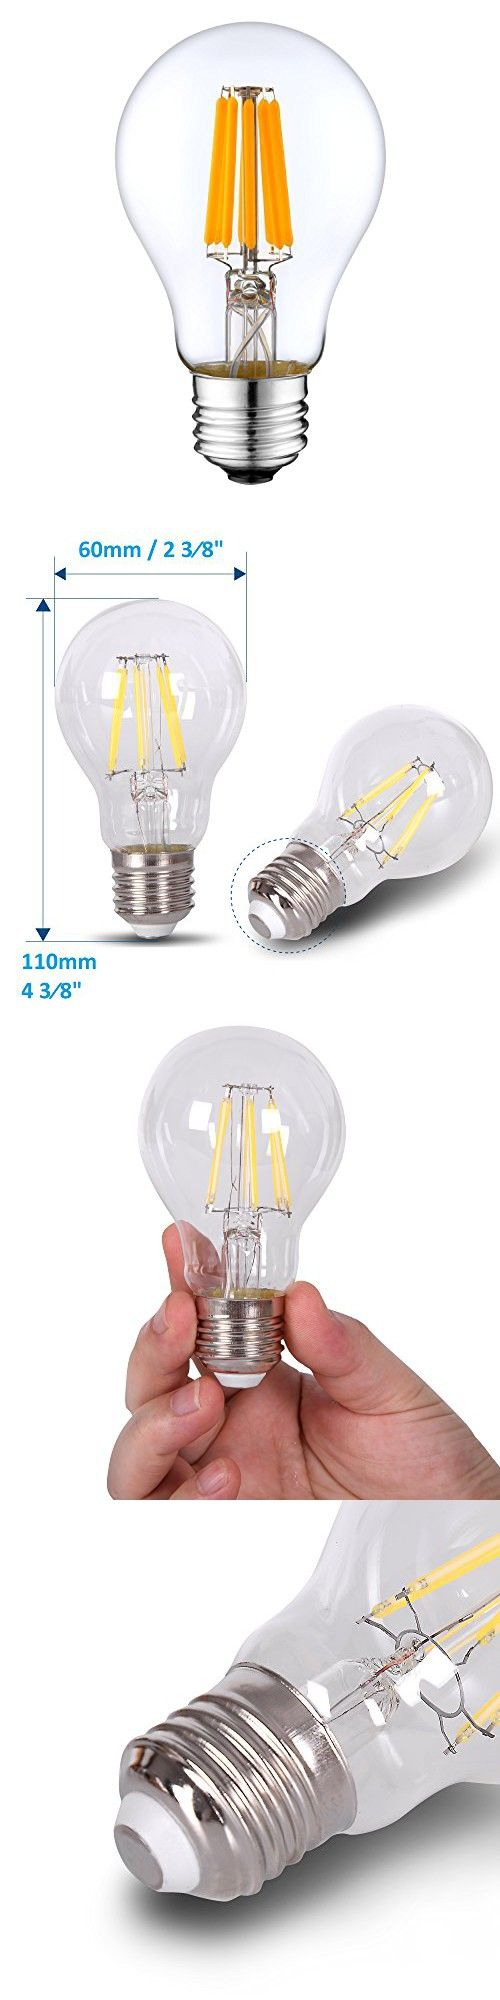 Dc 12v Light Bulb A19 A60 3000k 4w Warm White Led Edison Filament E26 Screw Base Lamp Dc Low Voltage Rv Marine Boat Classic Industrial Prop Retro Landscape Indu Battery Lights